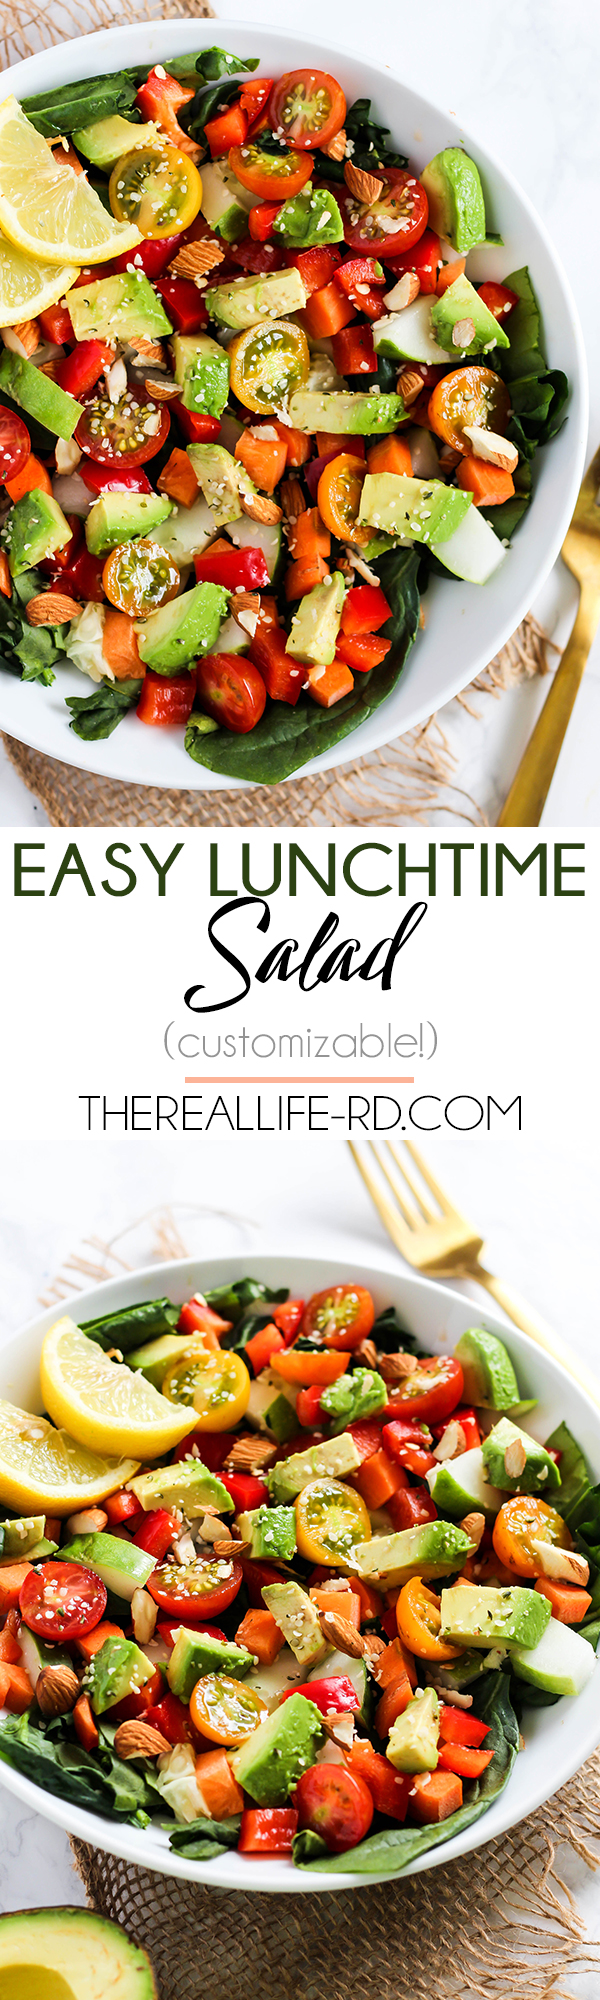 I love making this easy Lunchtime Salad to pack for work - easy customizable with beans, chicken, or any other toppings! | The Real Life RD